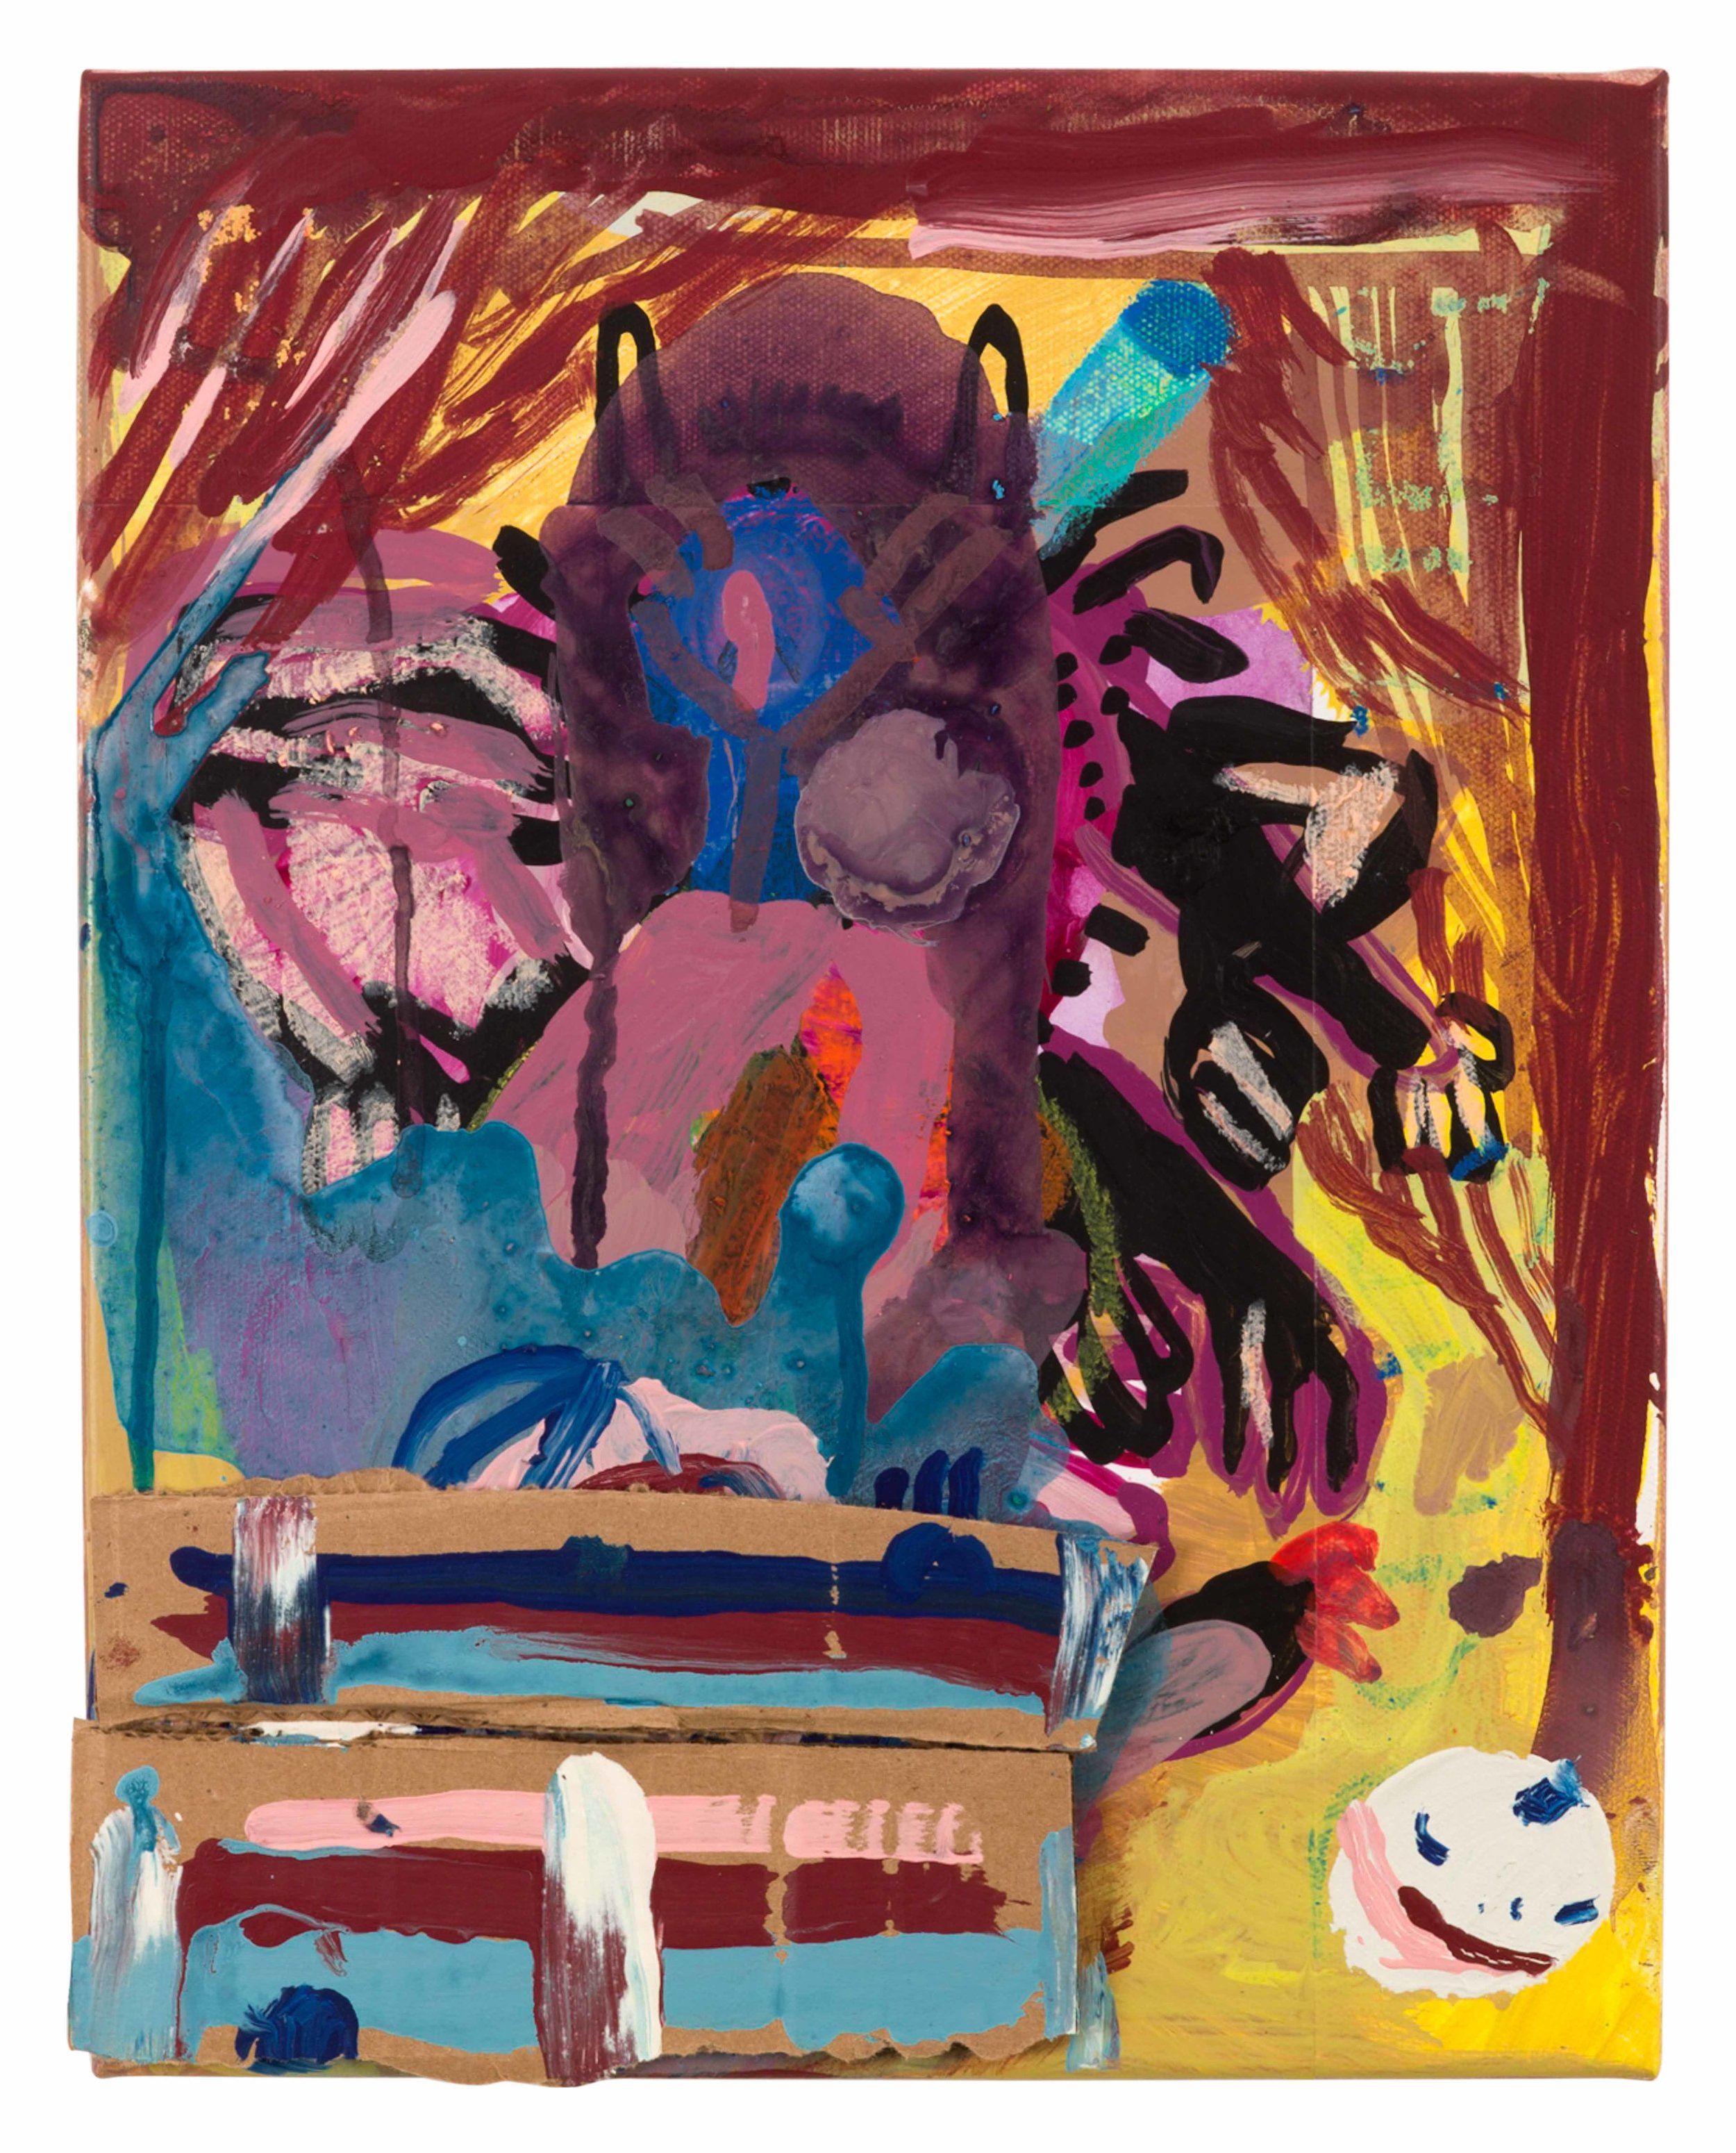 Drew Beattie and Ben Shepard  Theater Scene  2015 acrylic, crayon and cardboard on canvas 14 x 11 inches